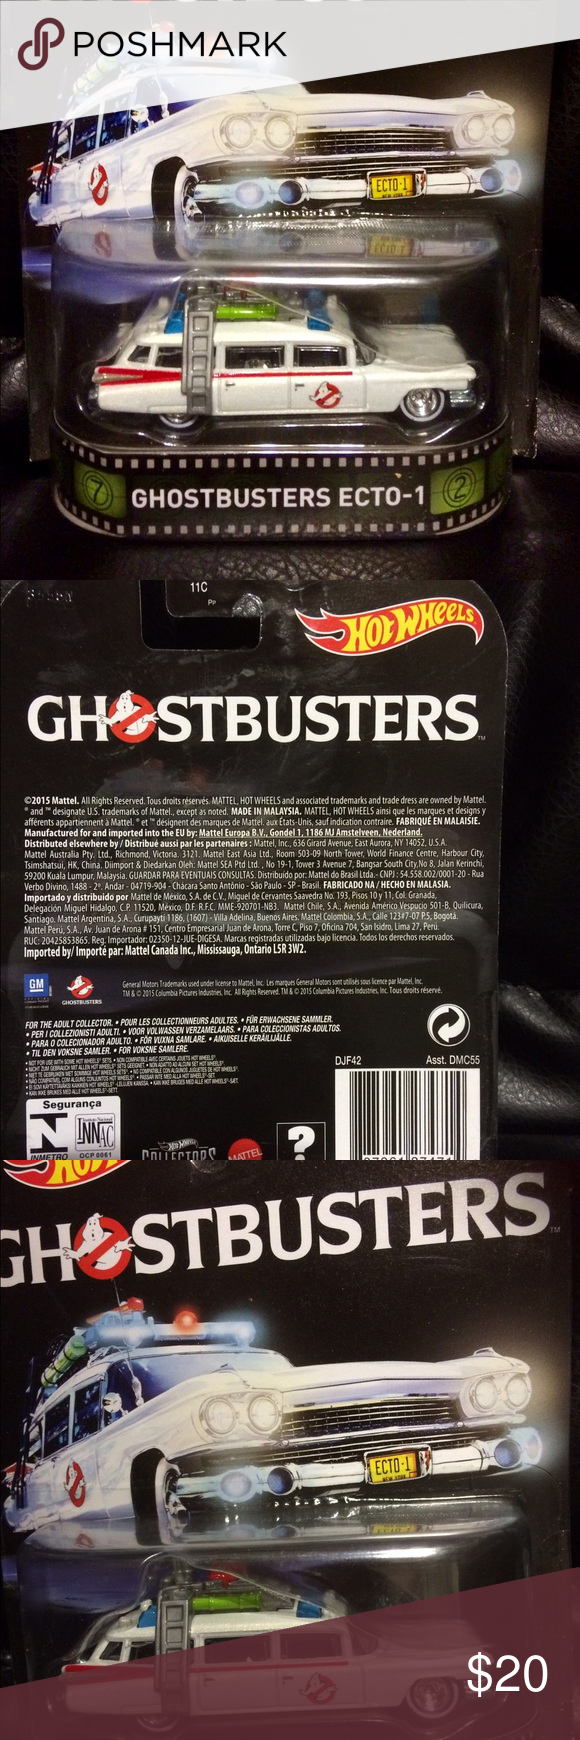 Ghostbusters Ecto-1 HotWheels NEW New and unopened . HotWheels Ecto-1 Ghostbusters car. Accessories